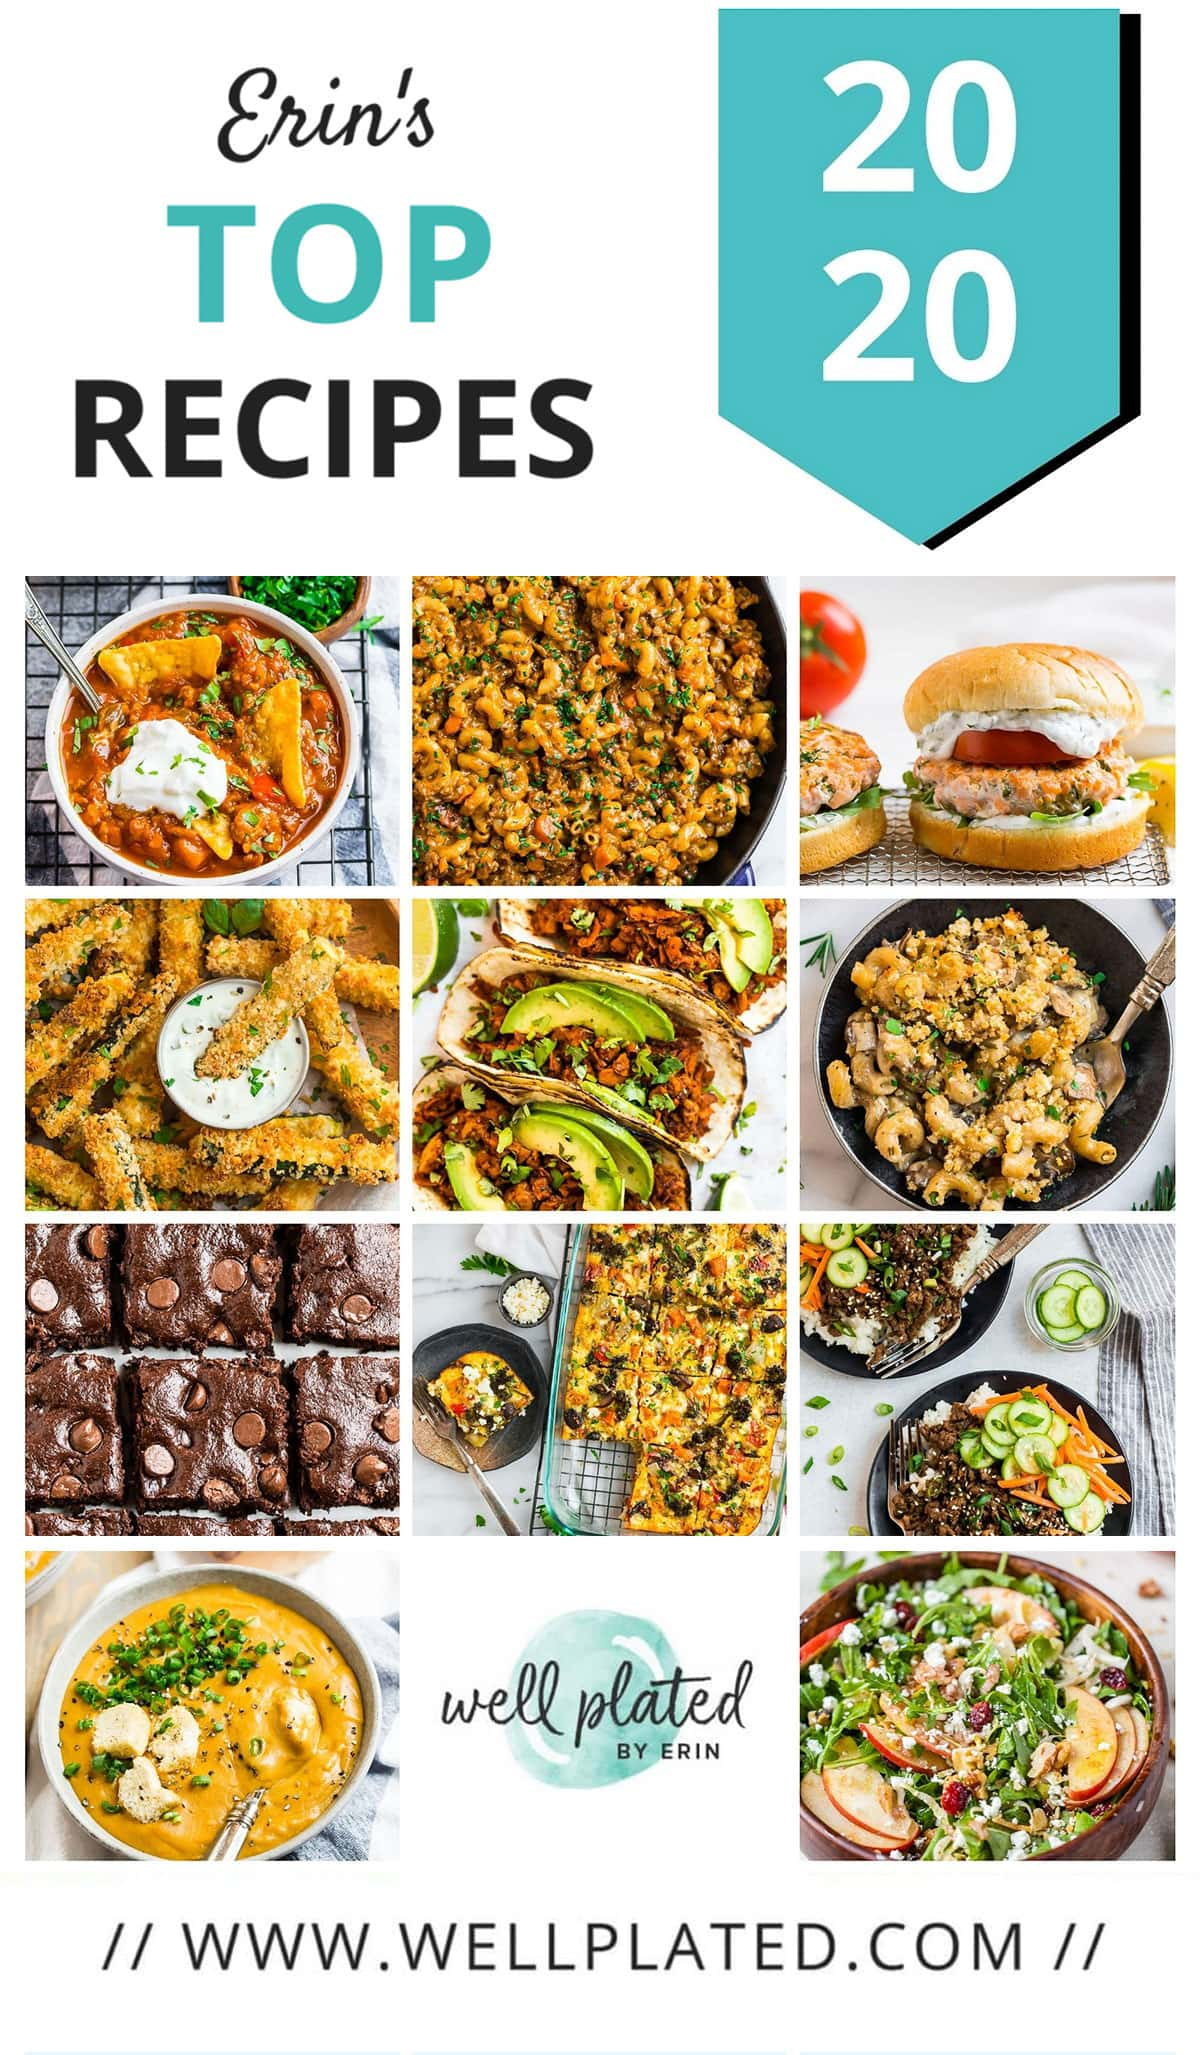 A collage of the best healthy recipes of 2020